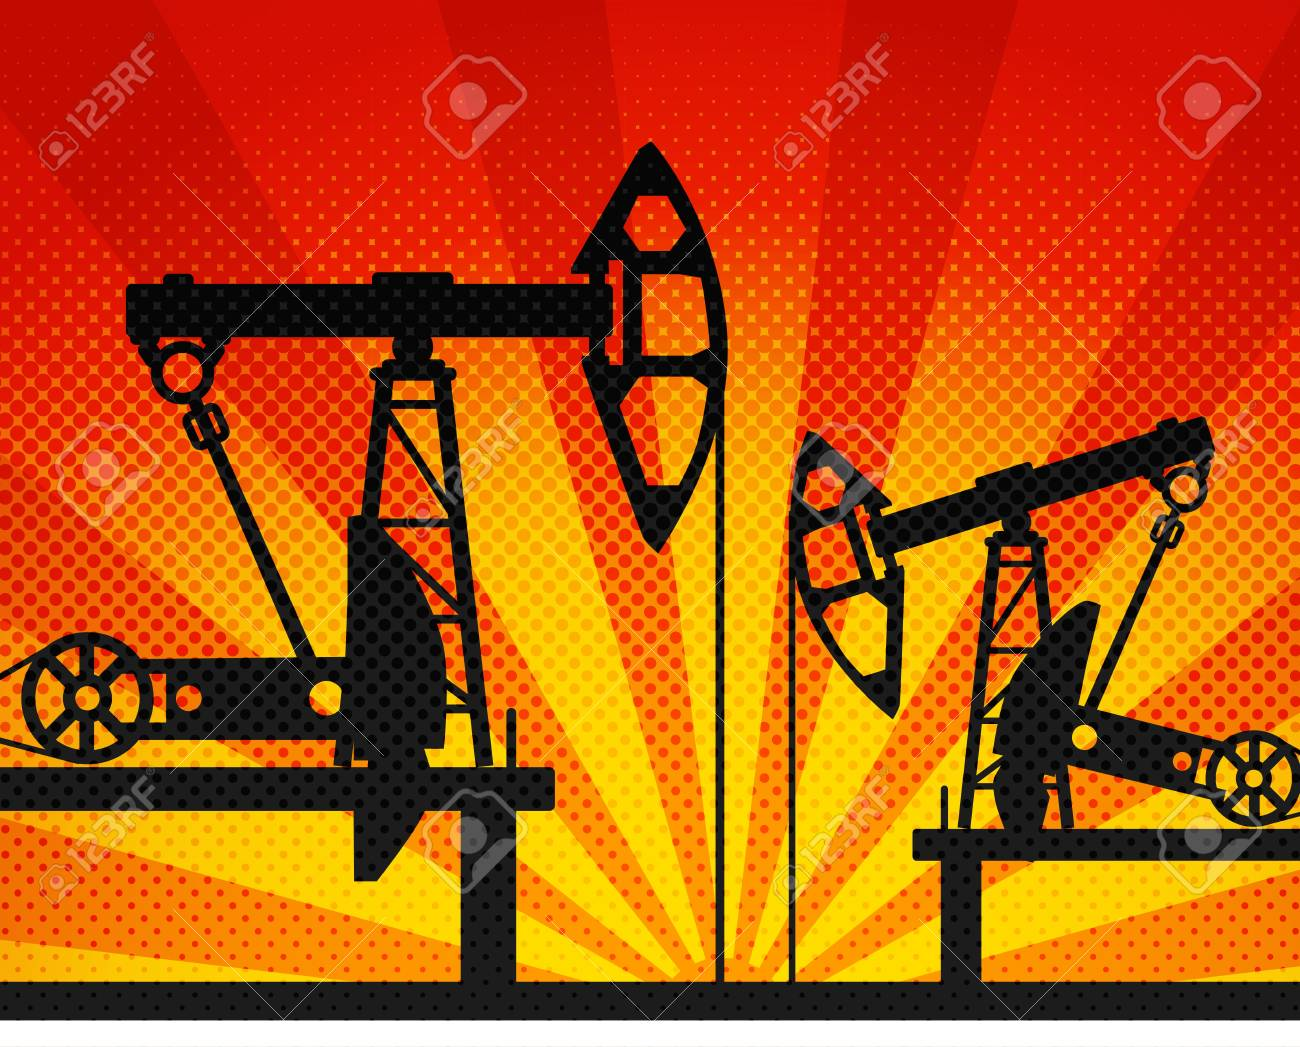 Oil units at work in perspective  Illustration Stock Vector - 14473009